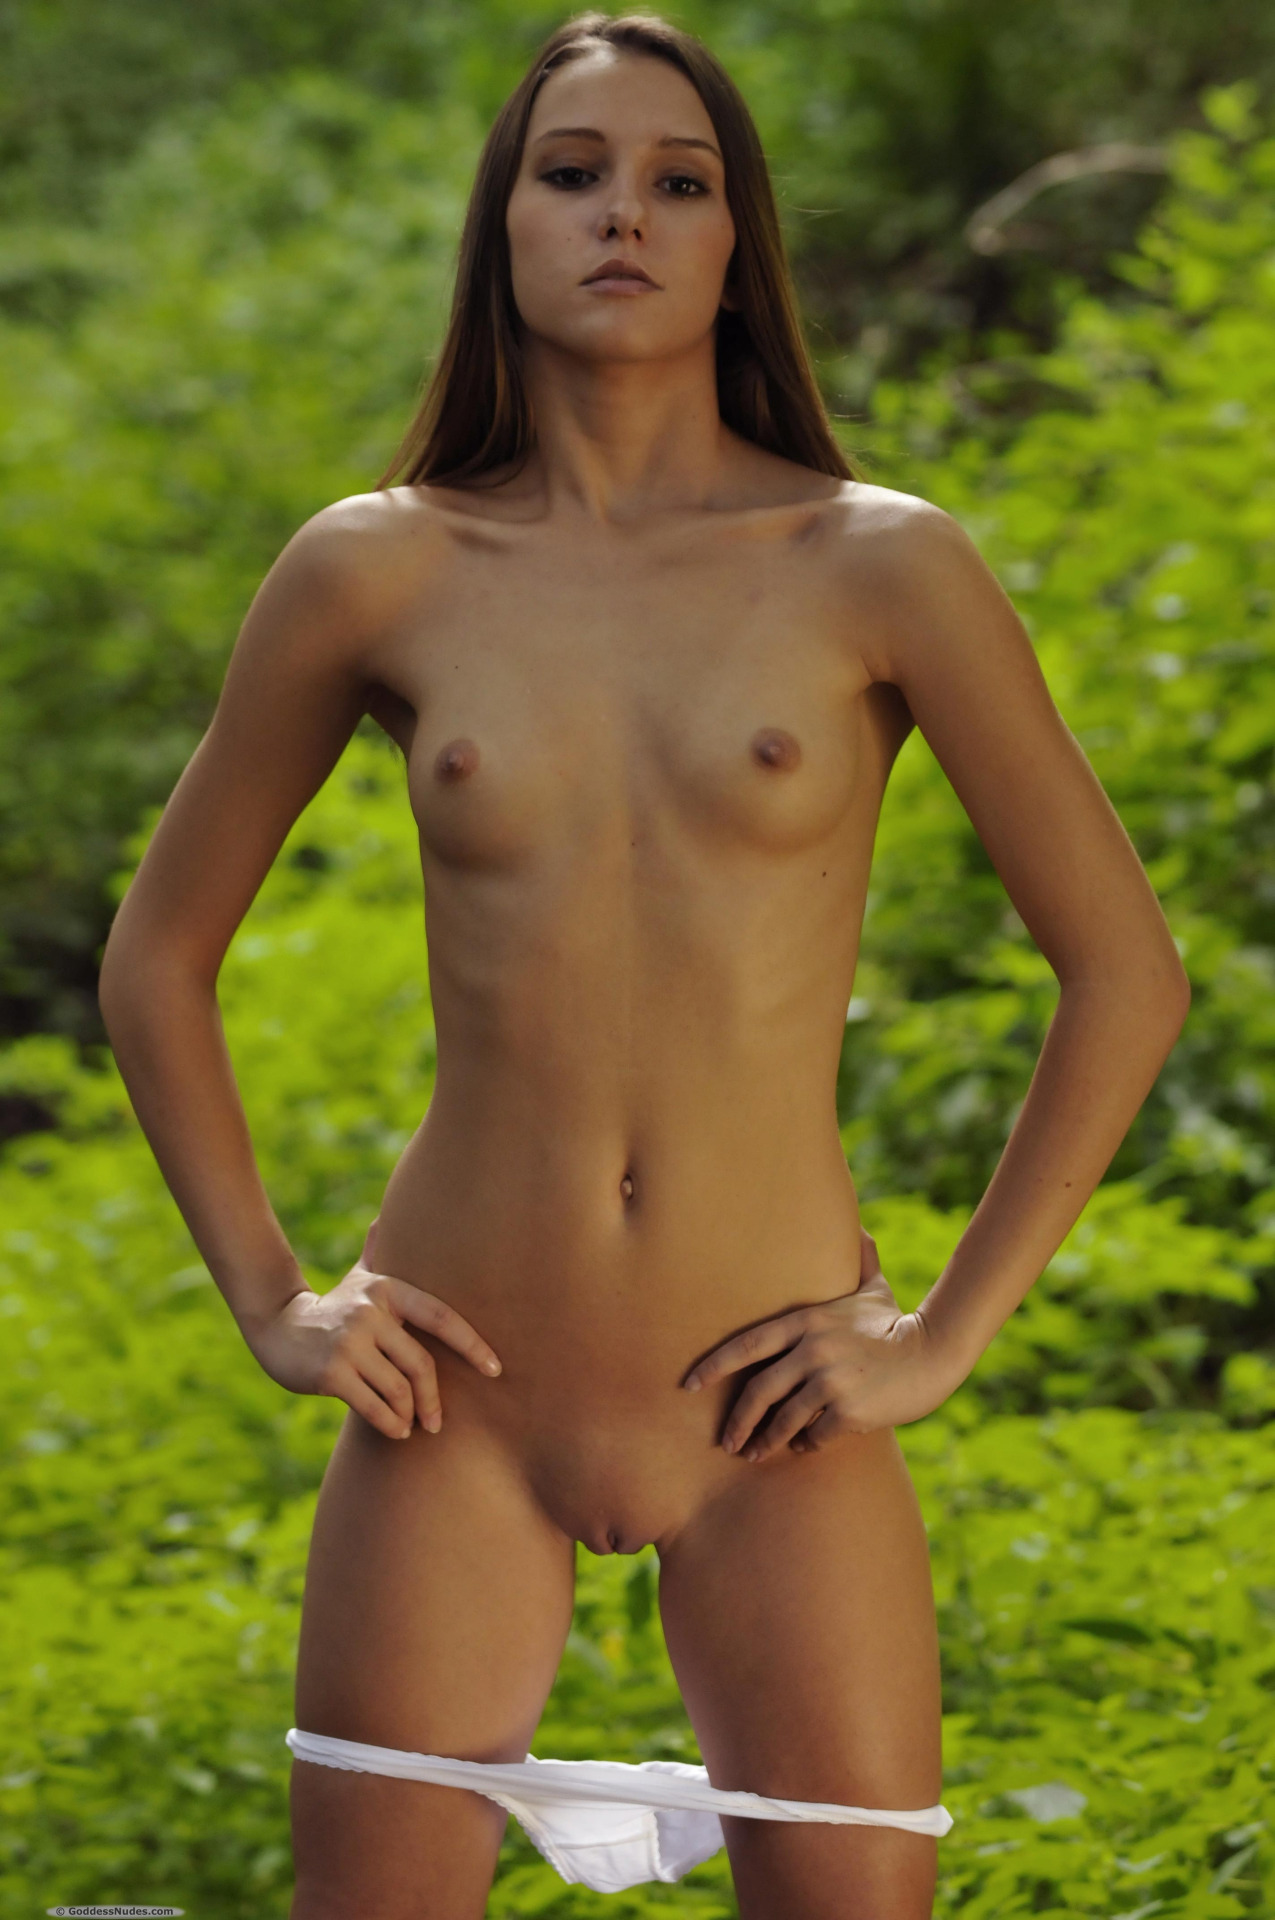 Flat chested female naked